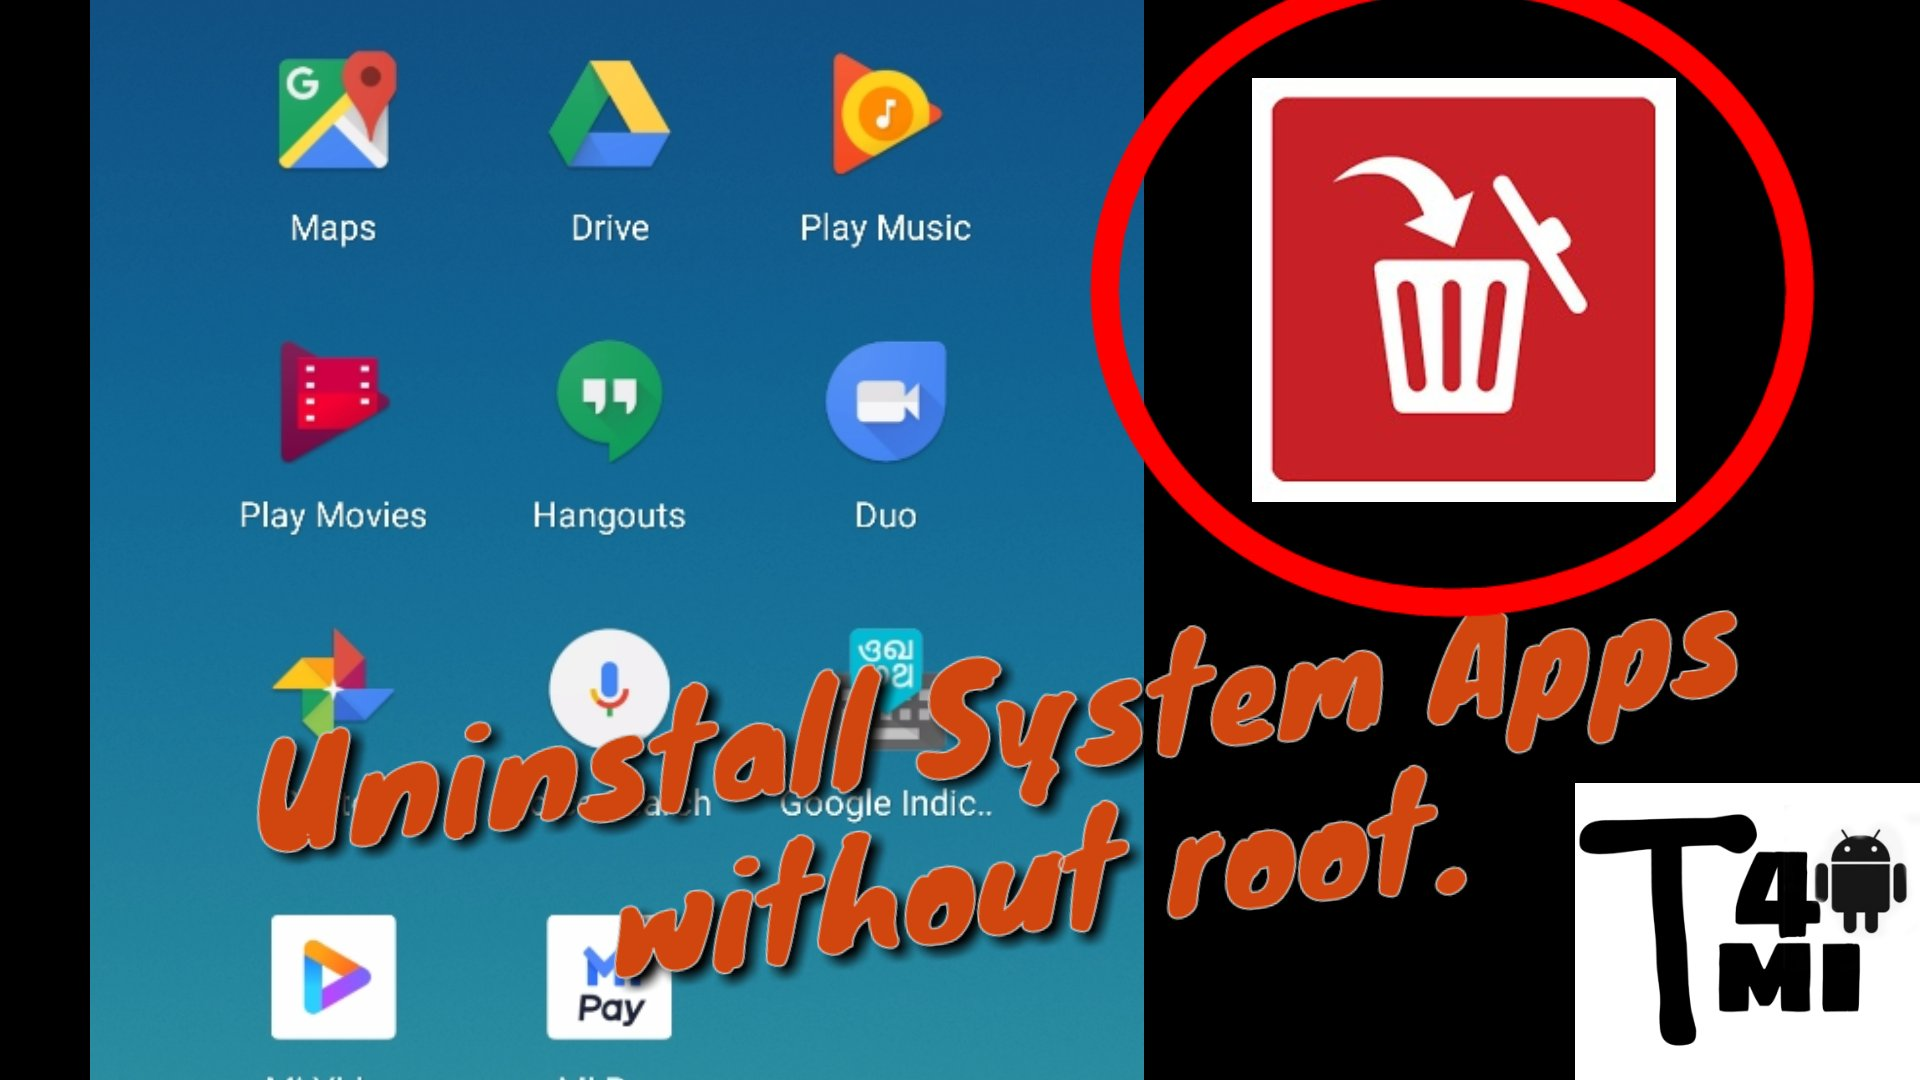 How To Uninstall System Apps Without Root